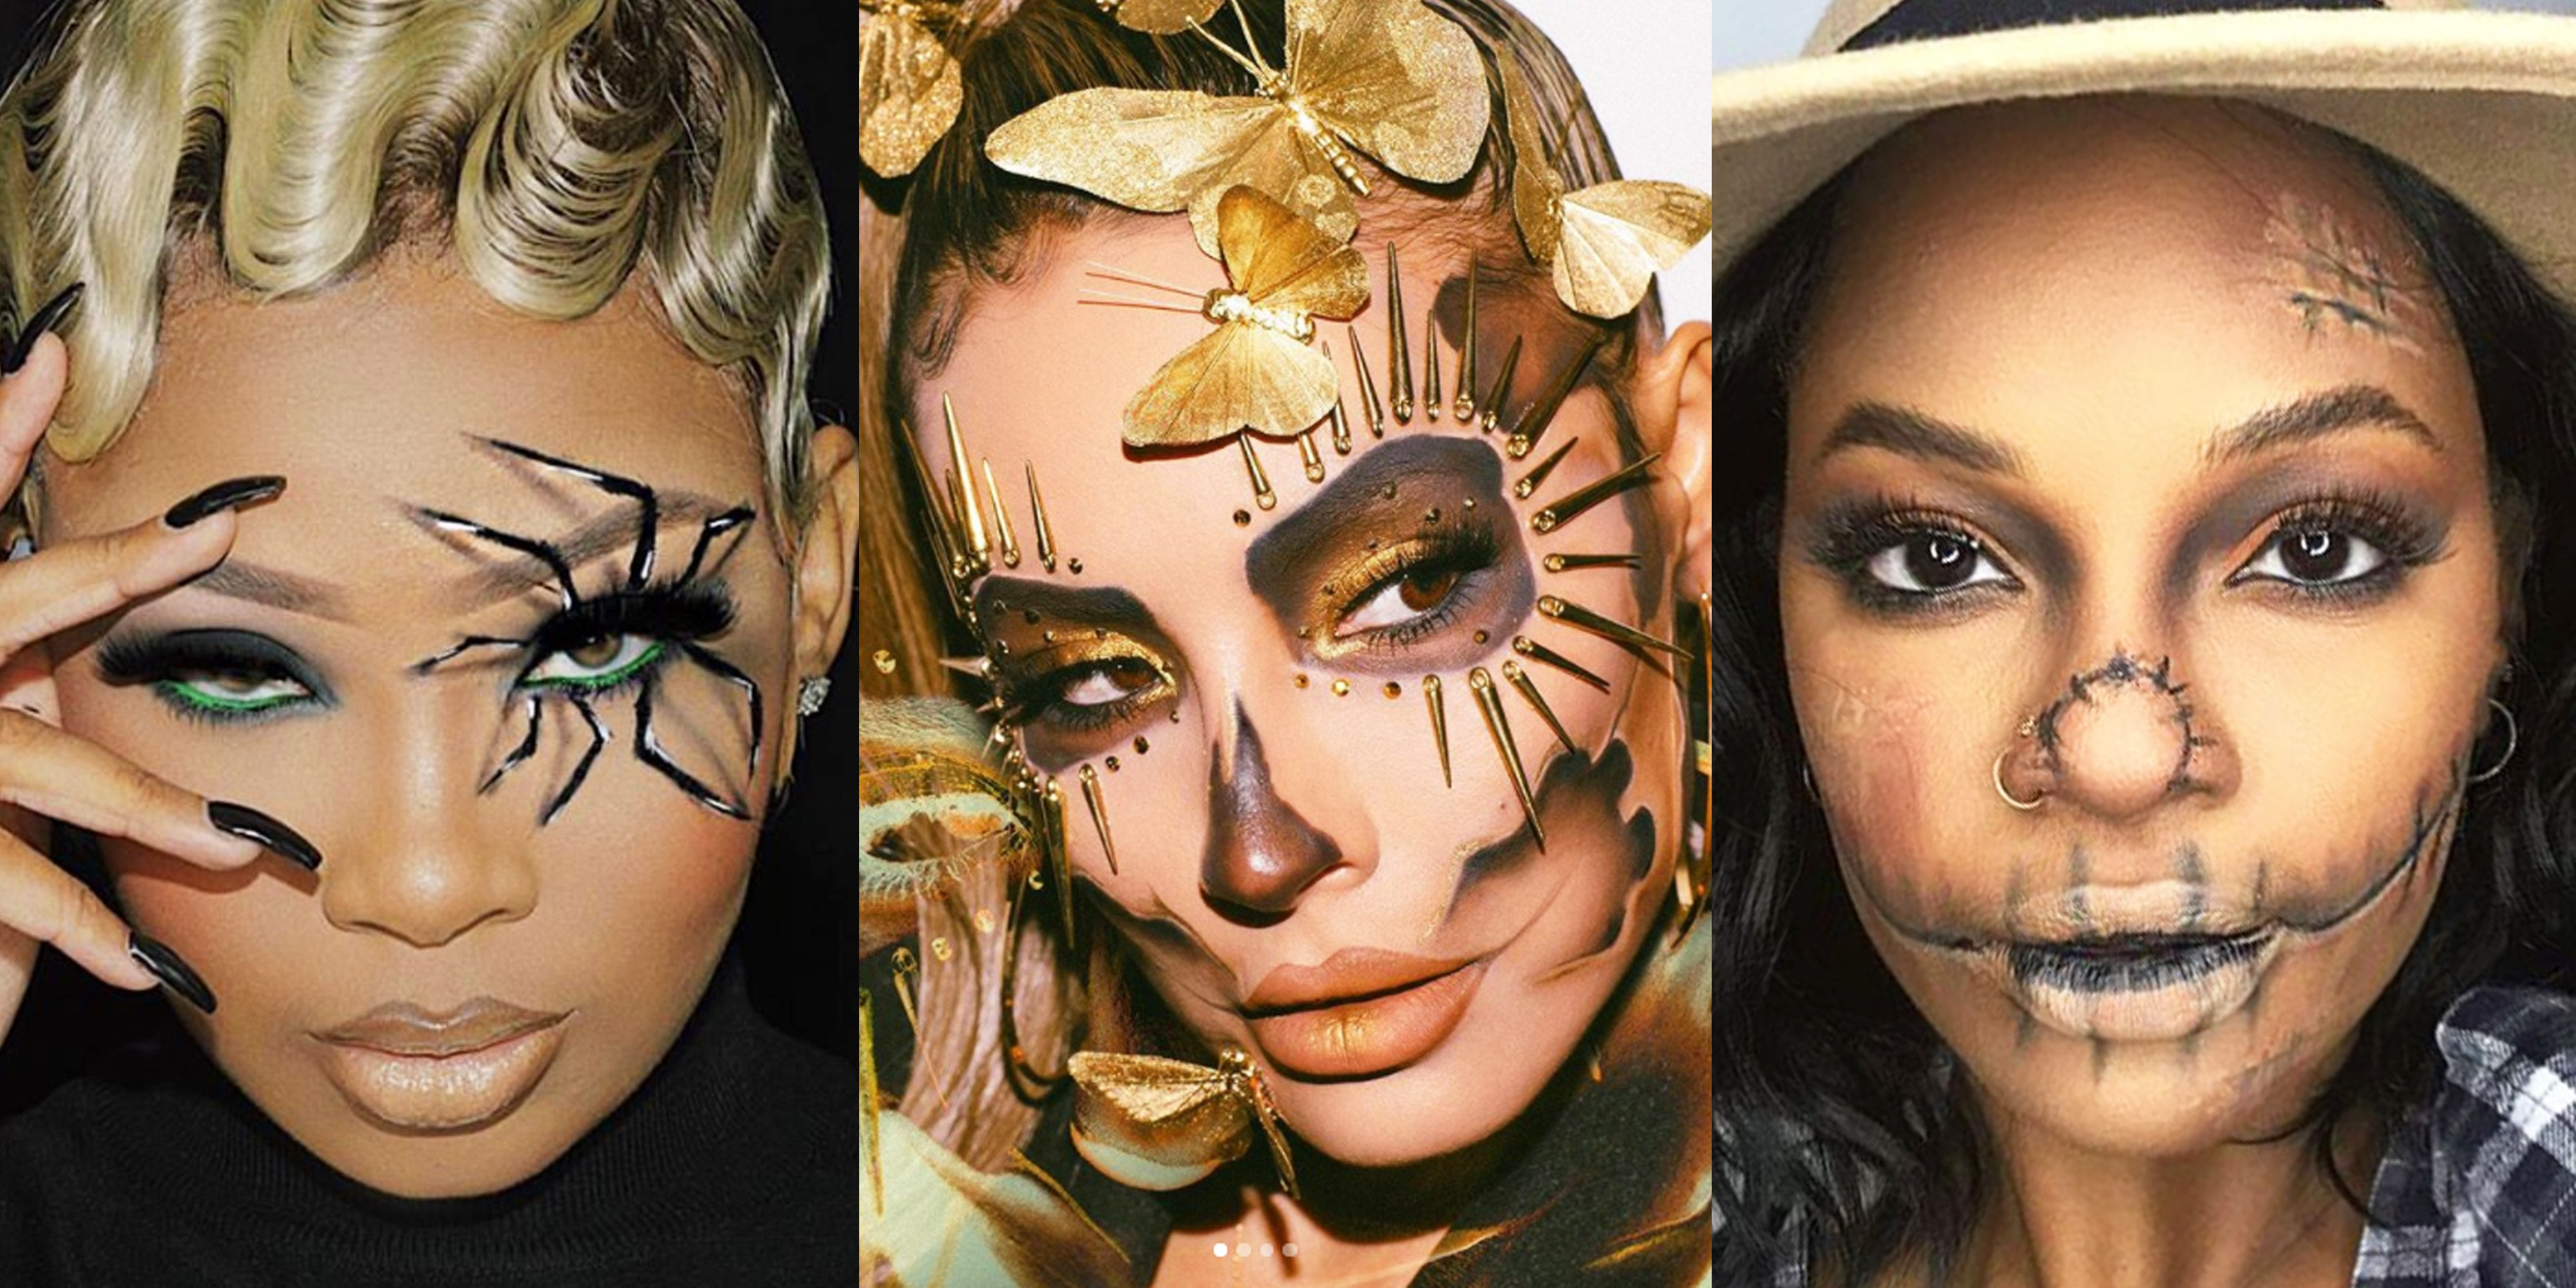 65 Best Halloween Makeup Ideas On Instagram In 2020 Scary Makeup Inspo